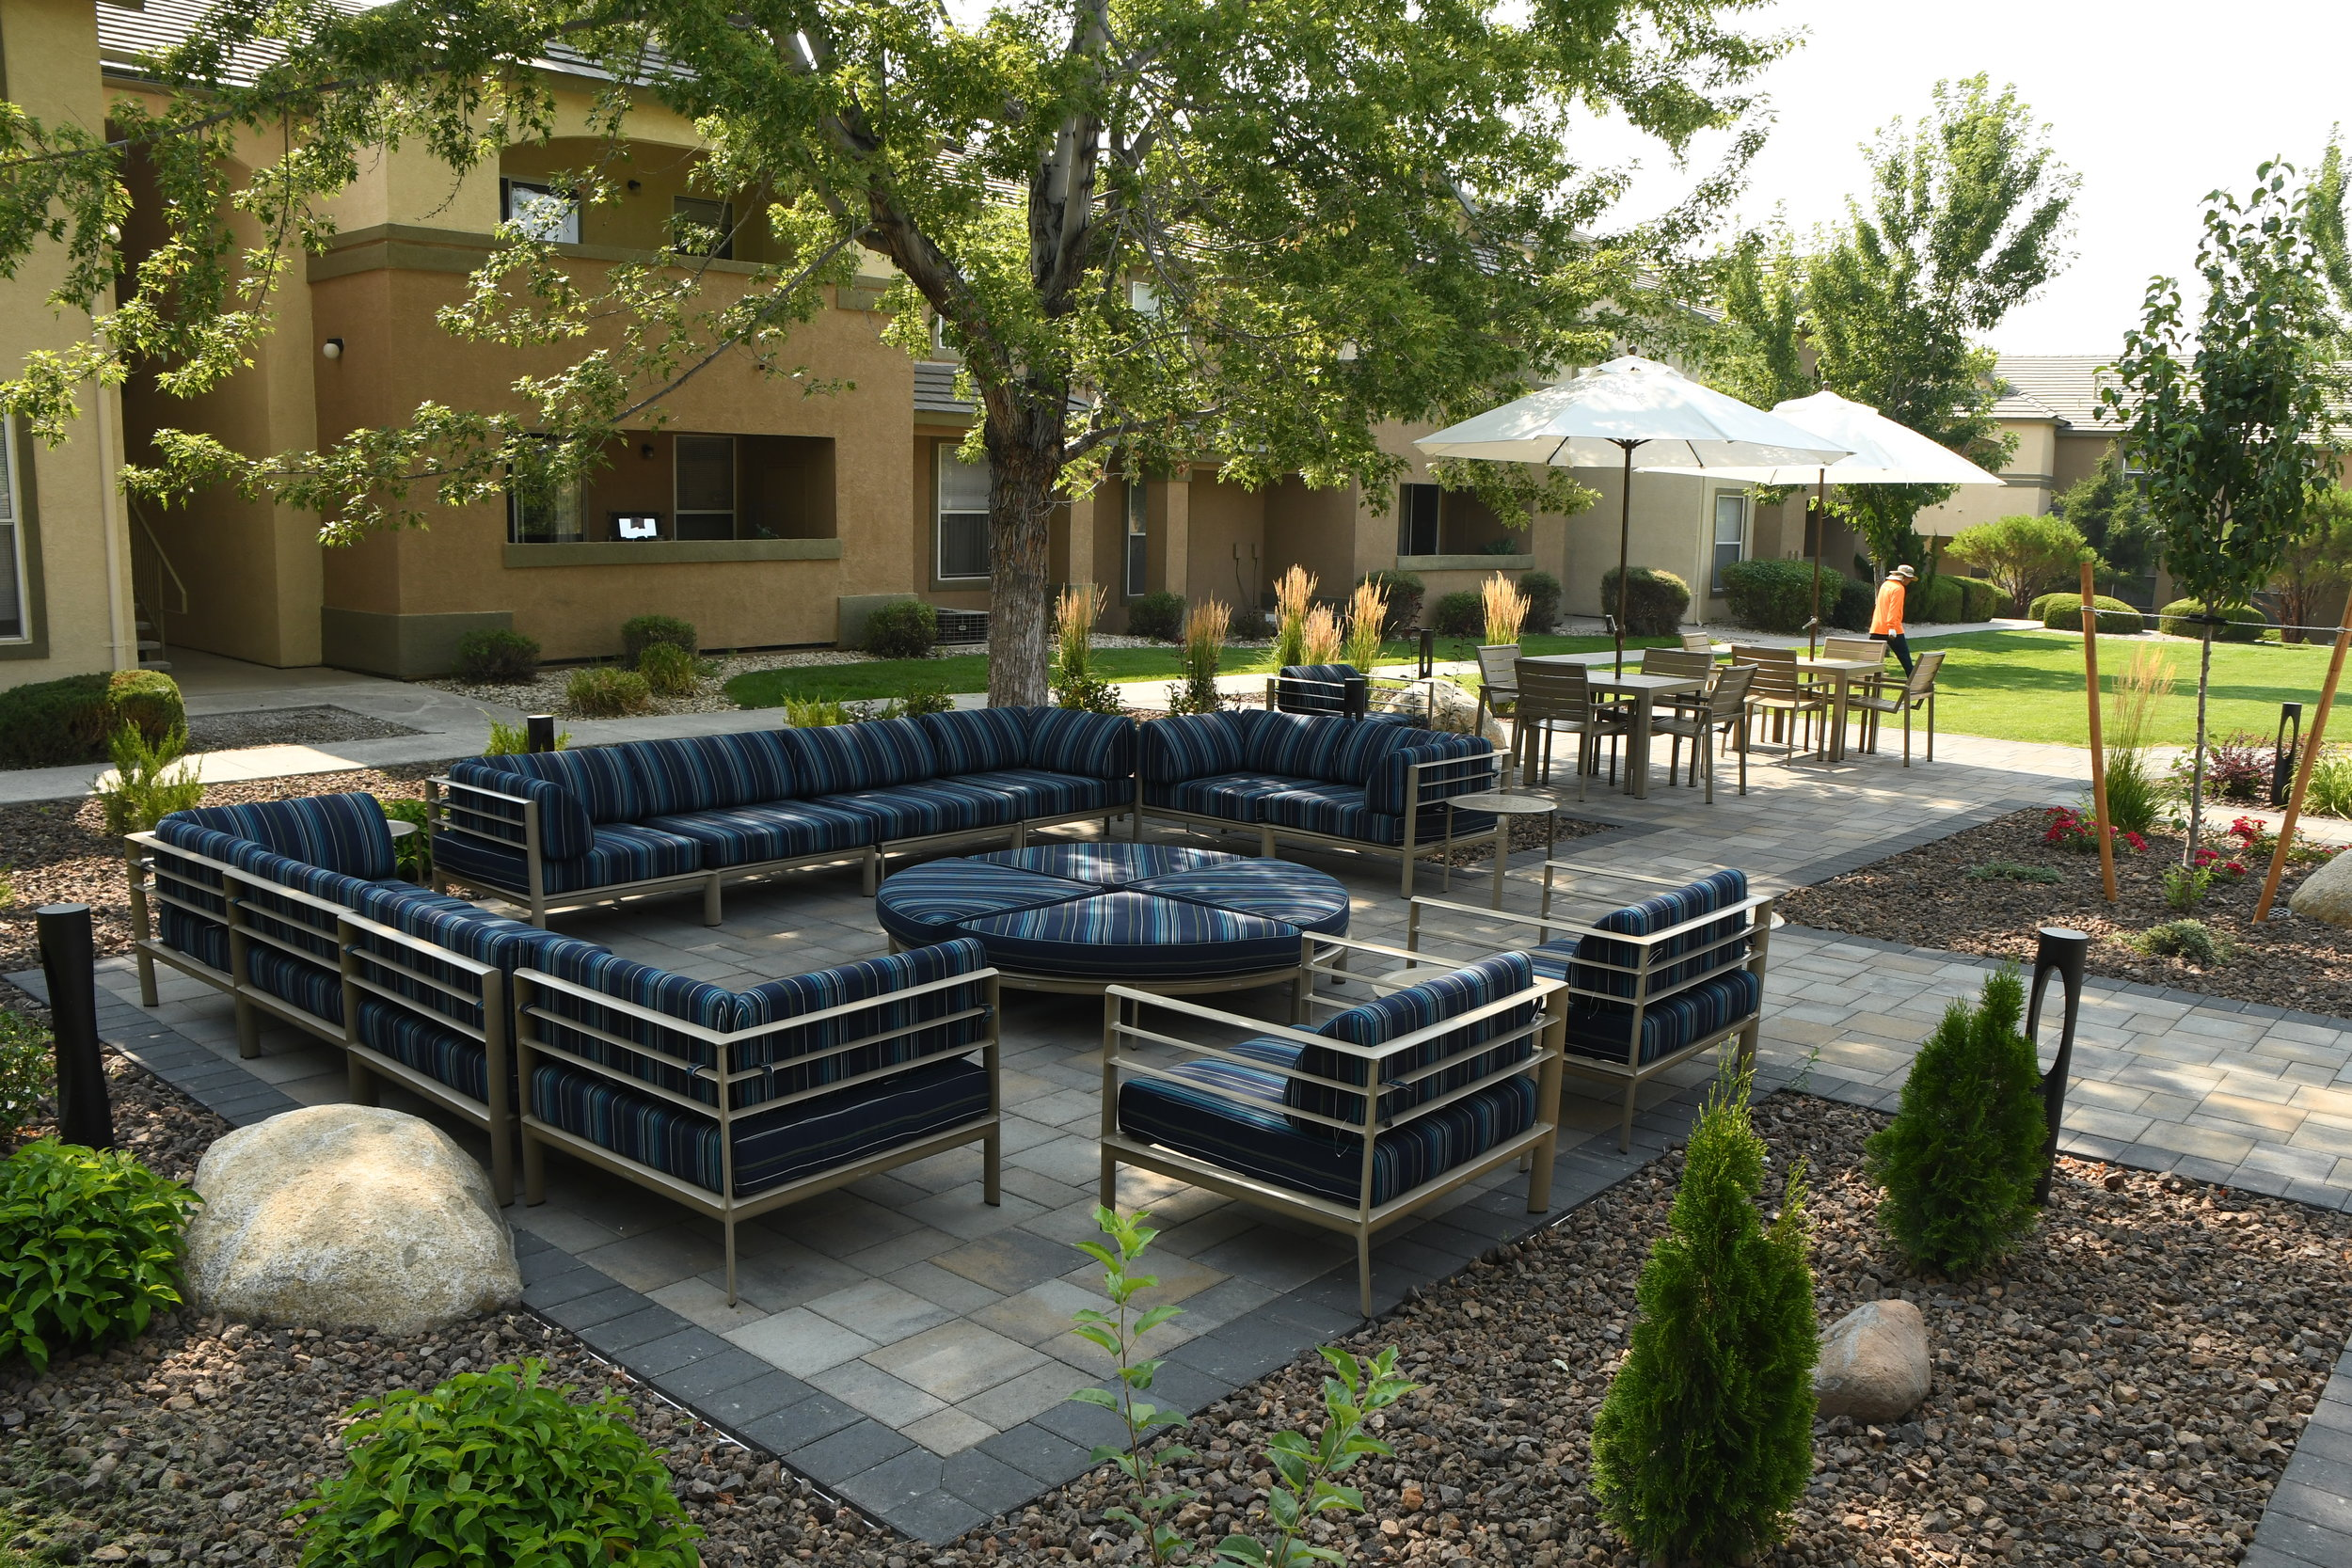 FireSky Outdoor: Designed by Landscape Architects, Built ... on Backyard Landscape Designers Near Me  id=52358